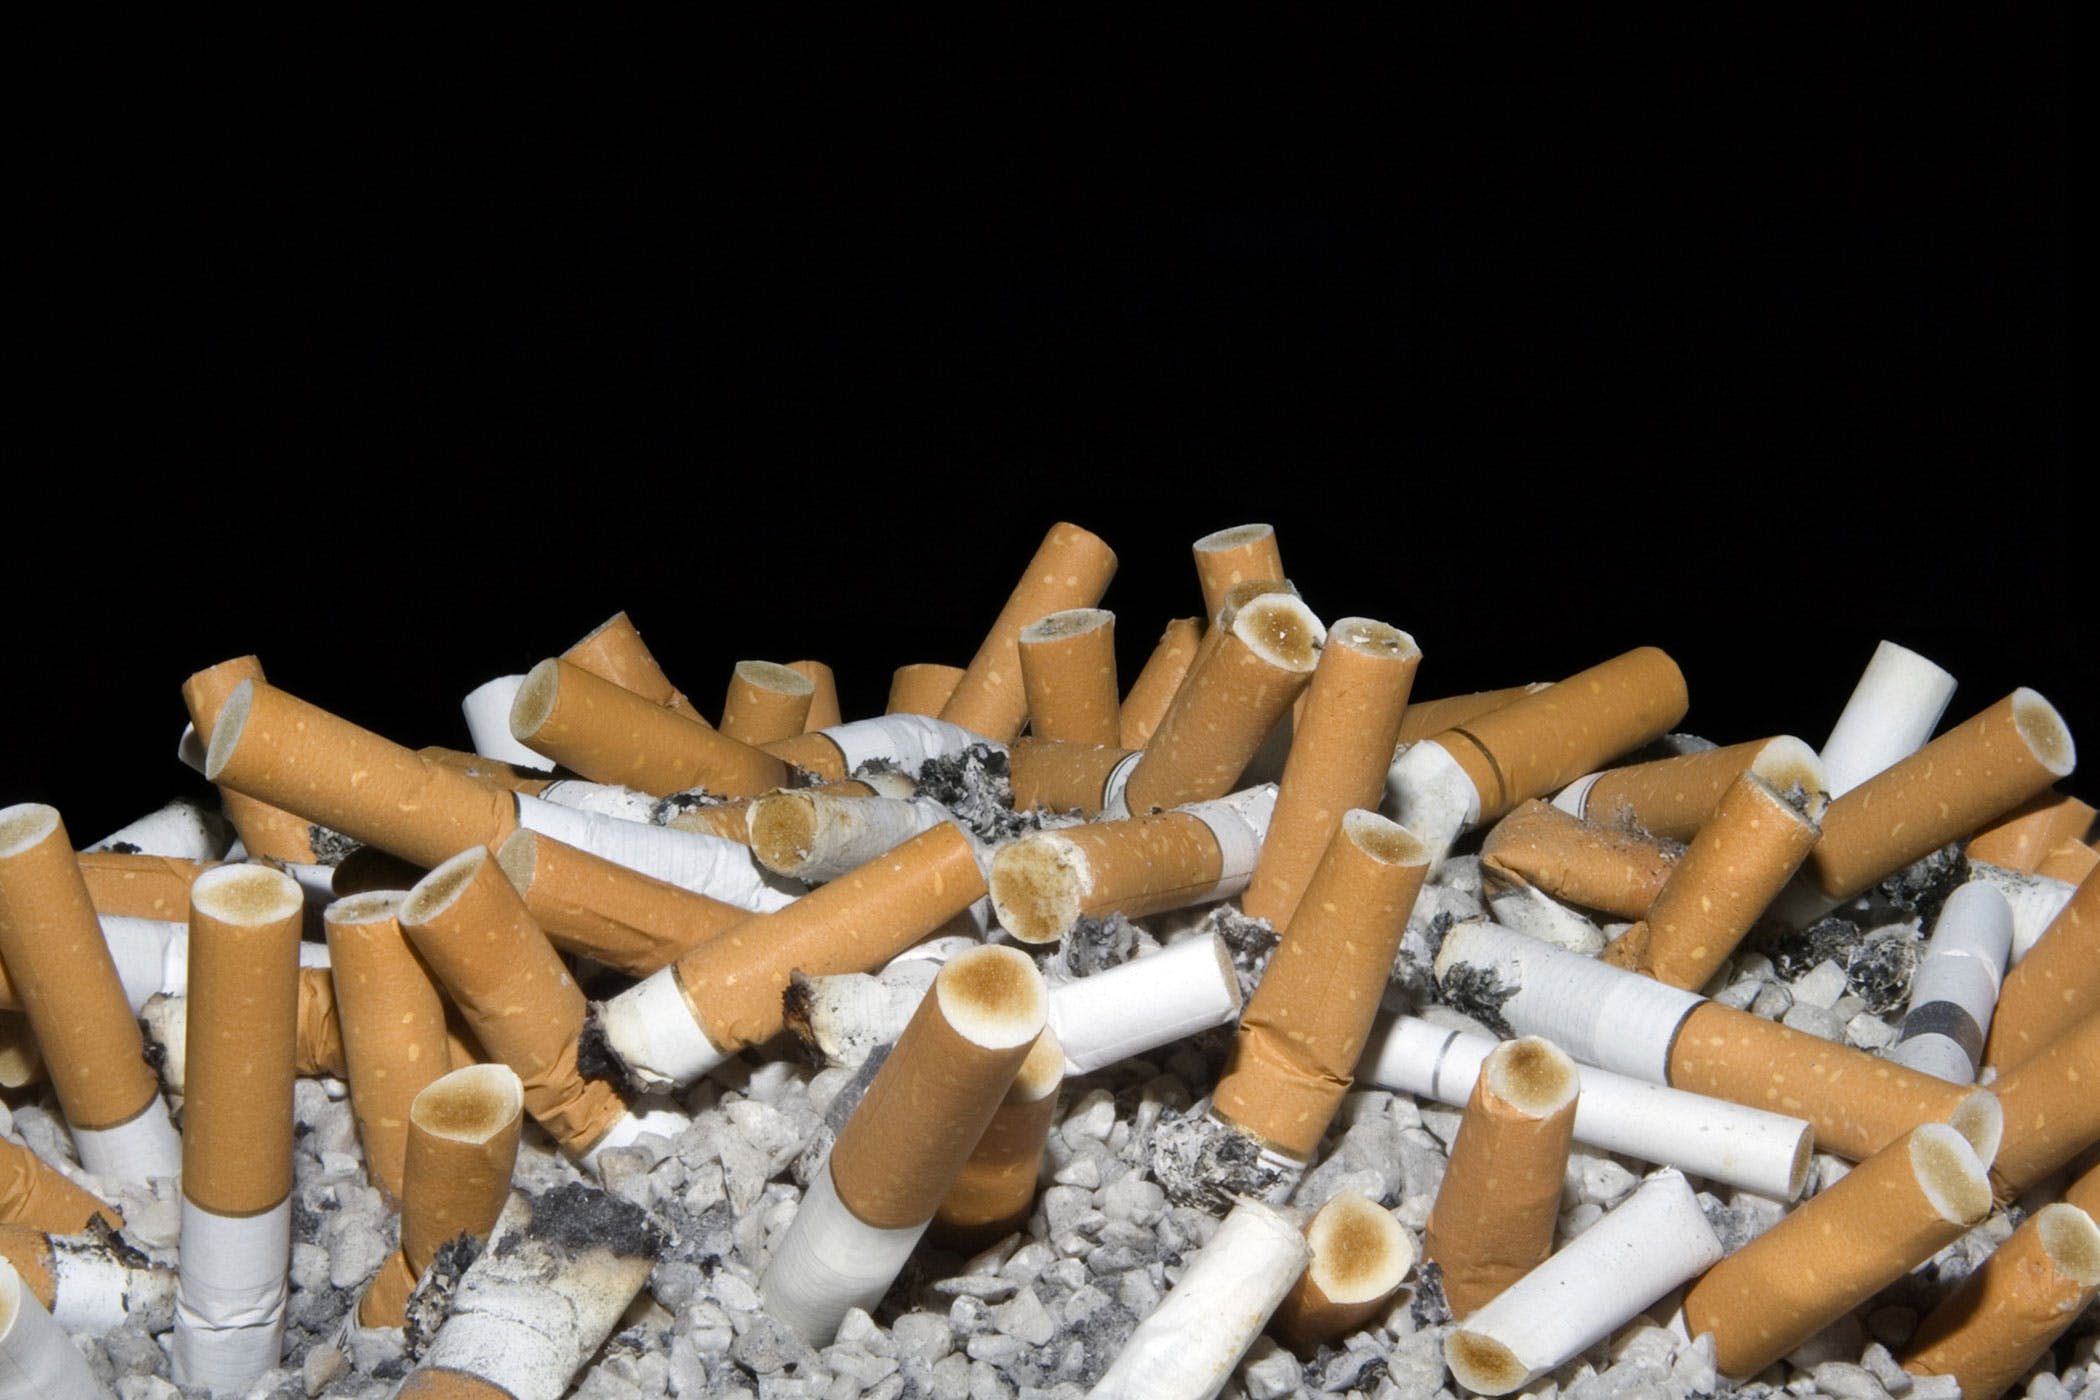 Nicotine Poisoning in Dogs - Symptoms, Causes, Diagnosis